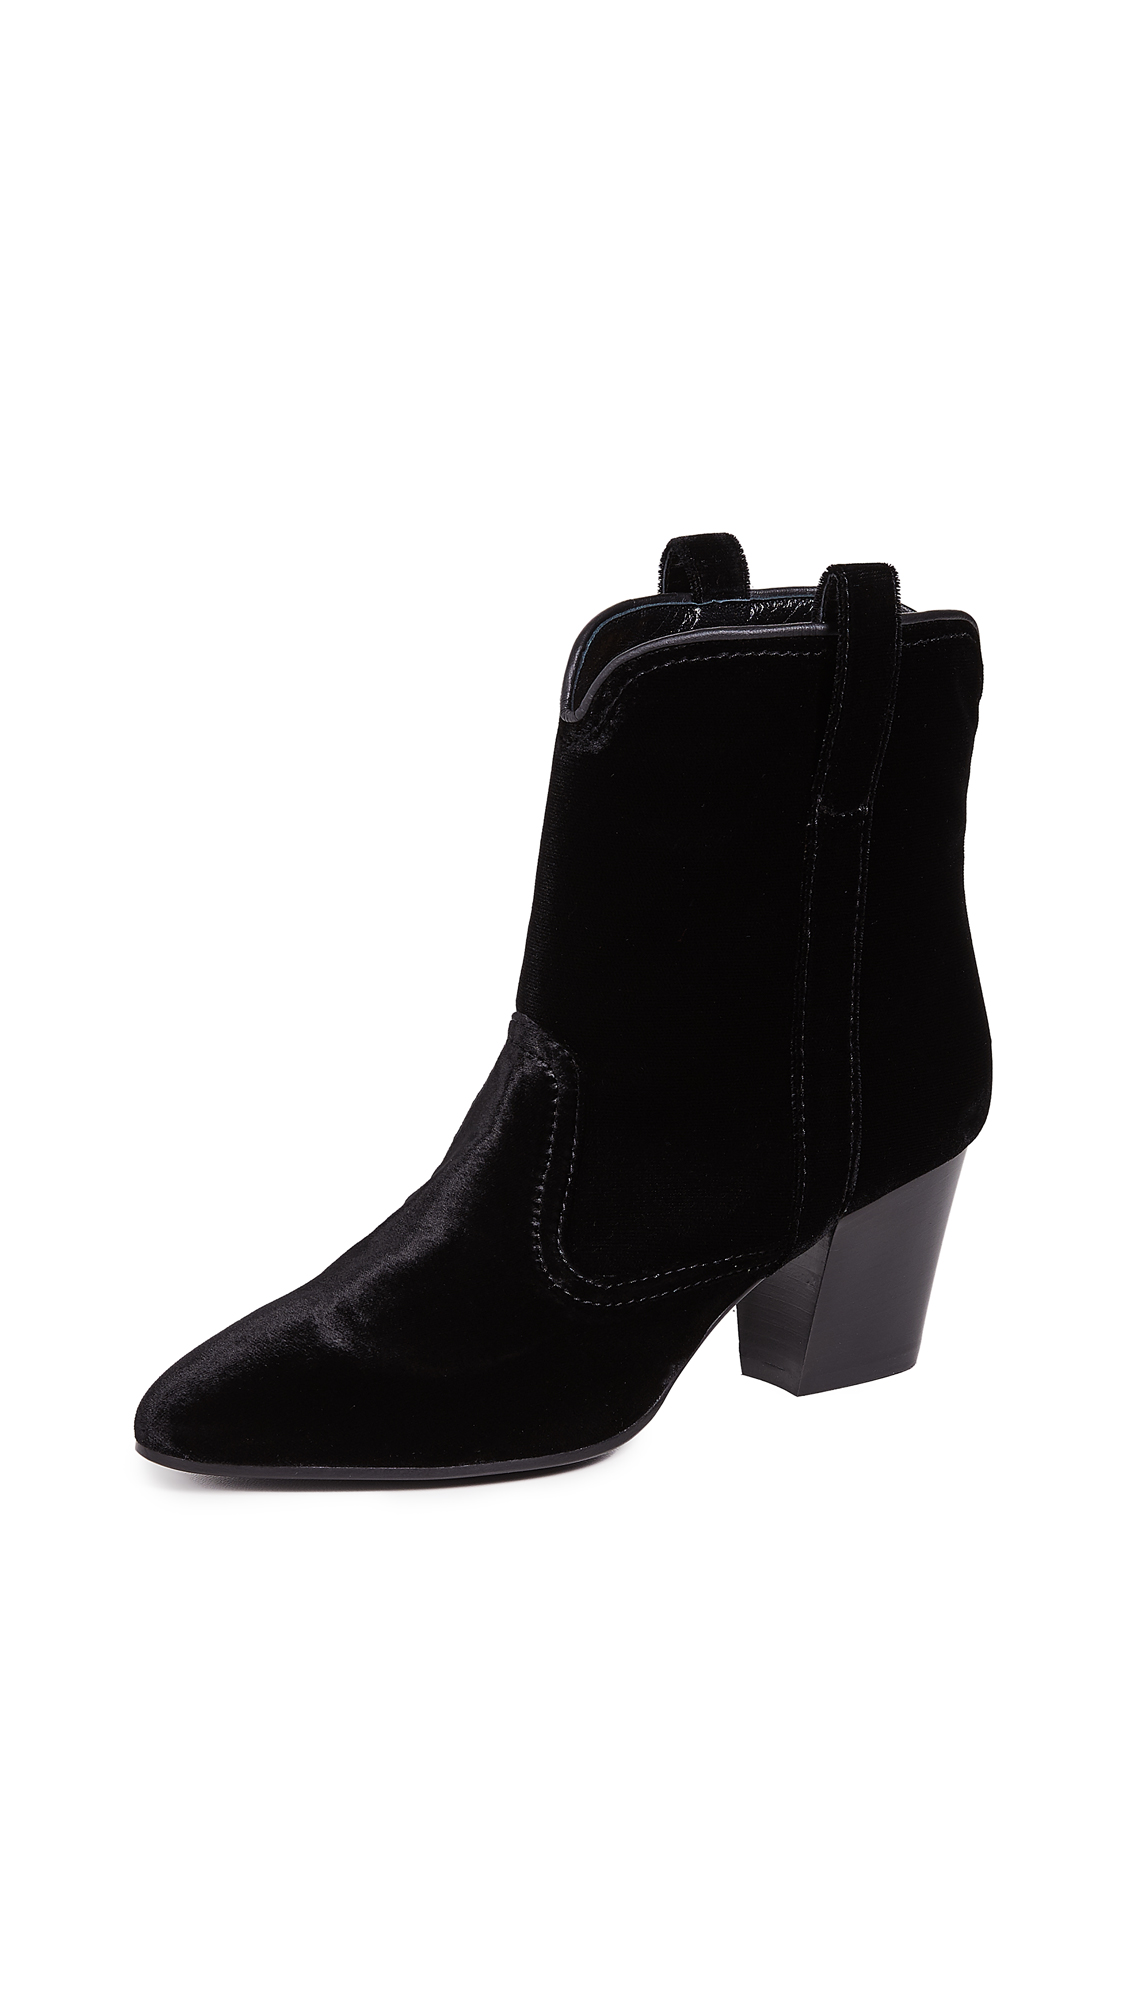 Laurence Dacade Sheryll Boots - Black